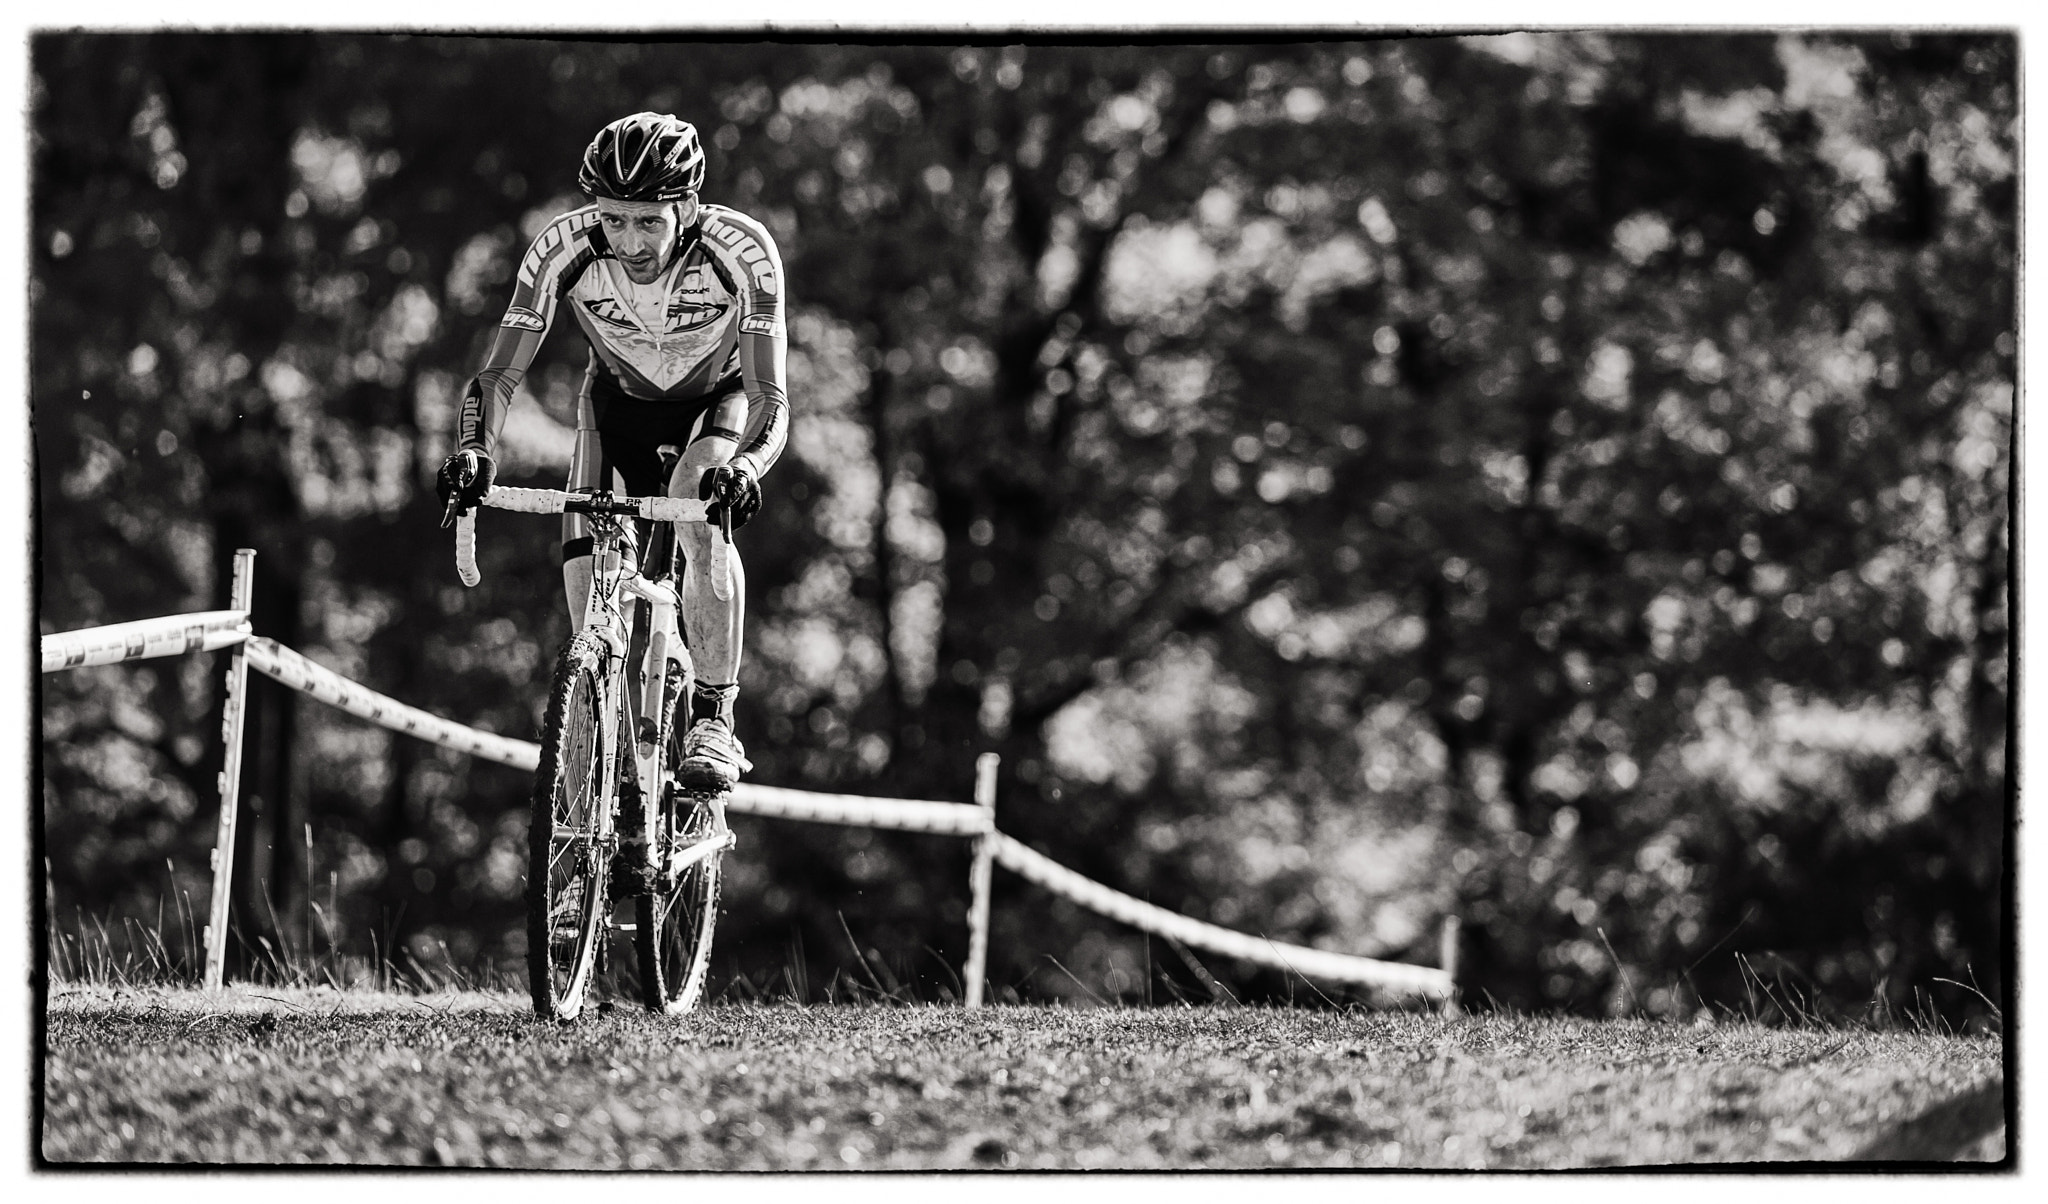 Photograph Paul Oldham British Cycle cross points champion by andy whitehouse on 500px